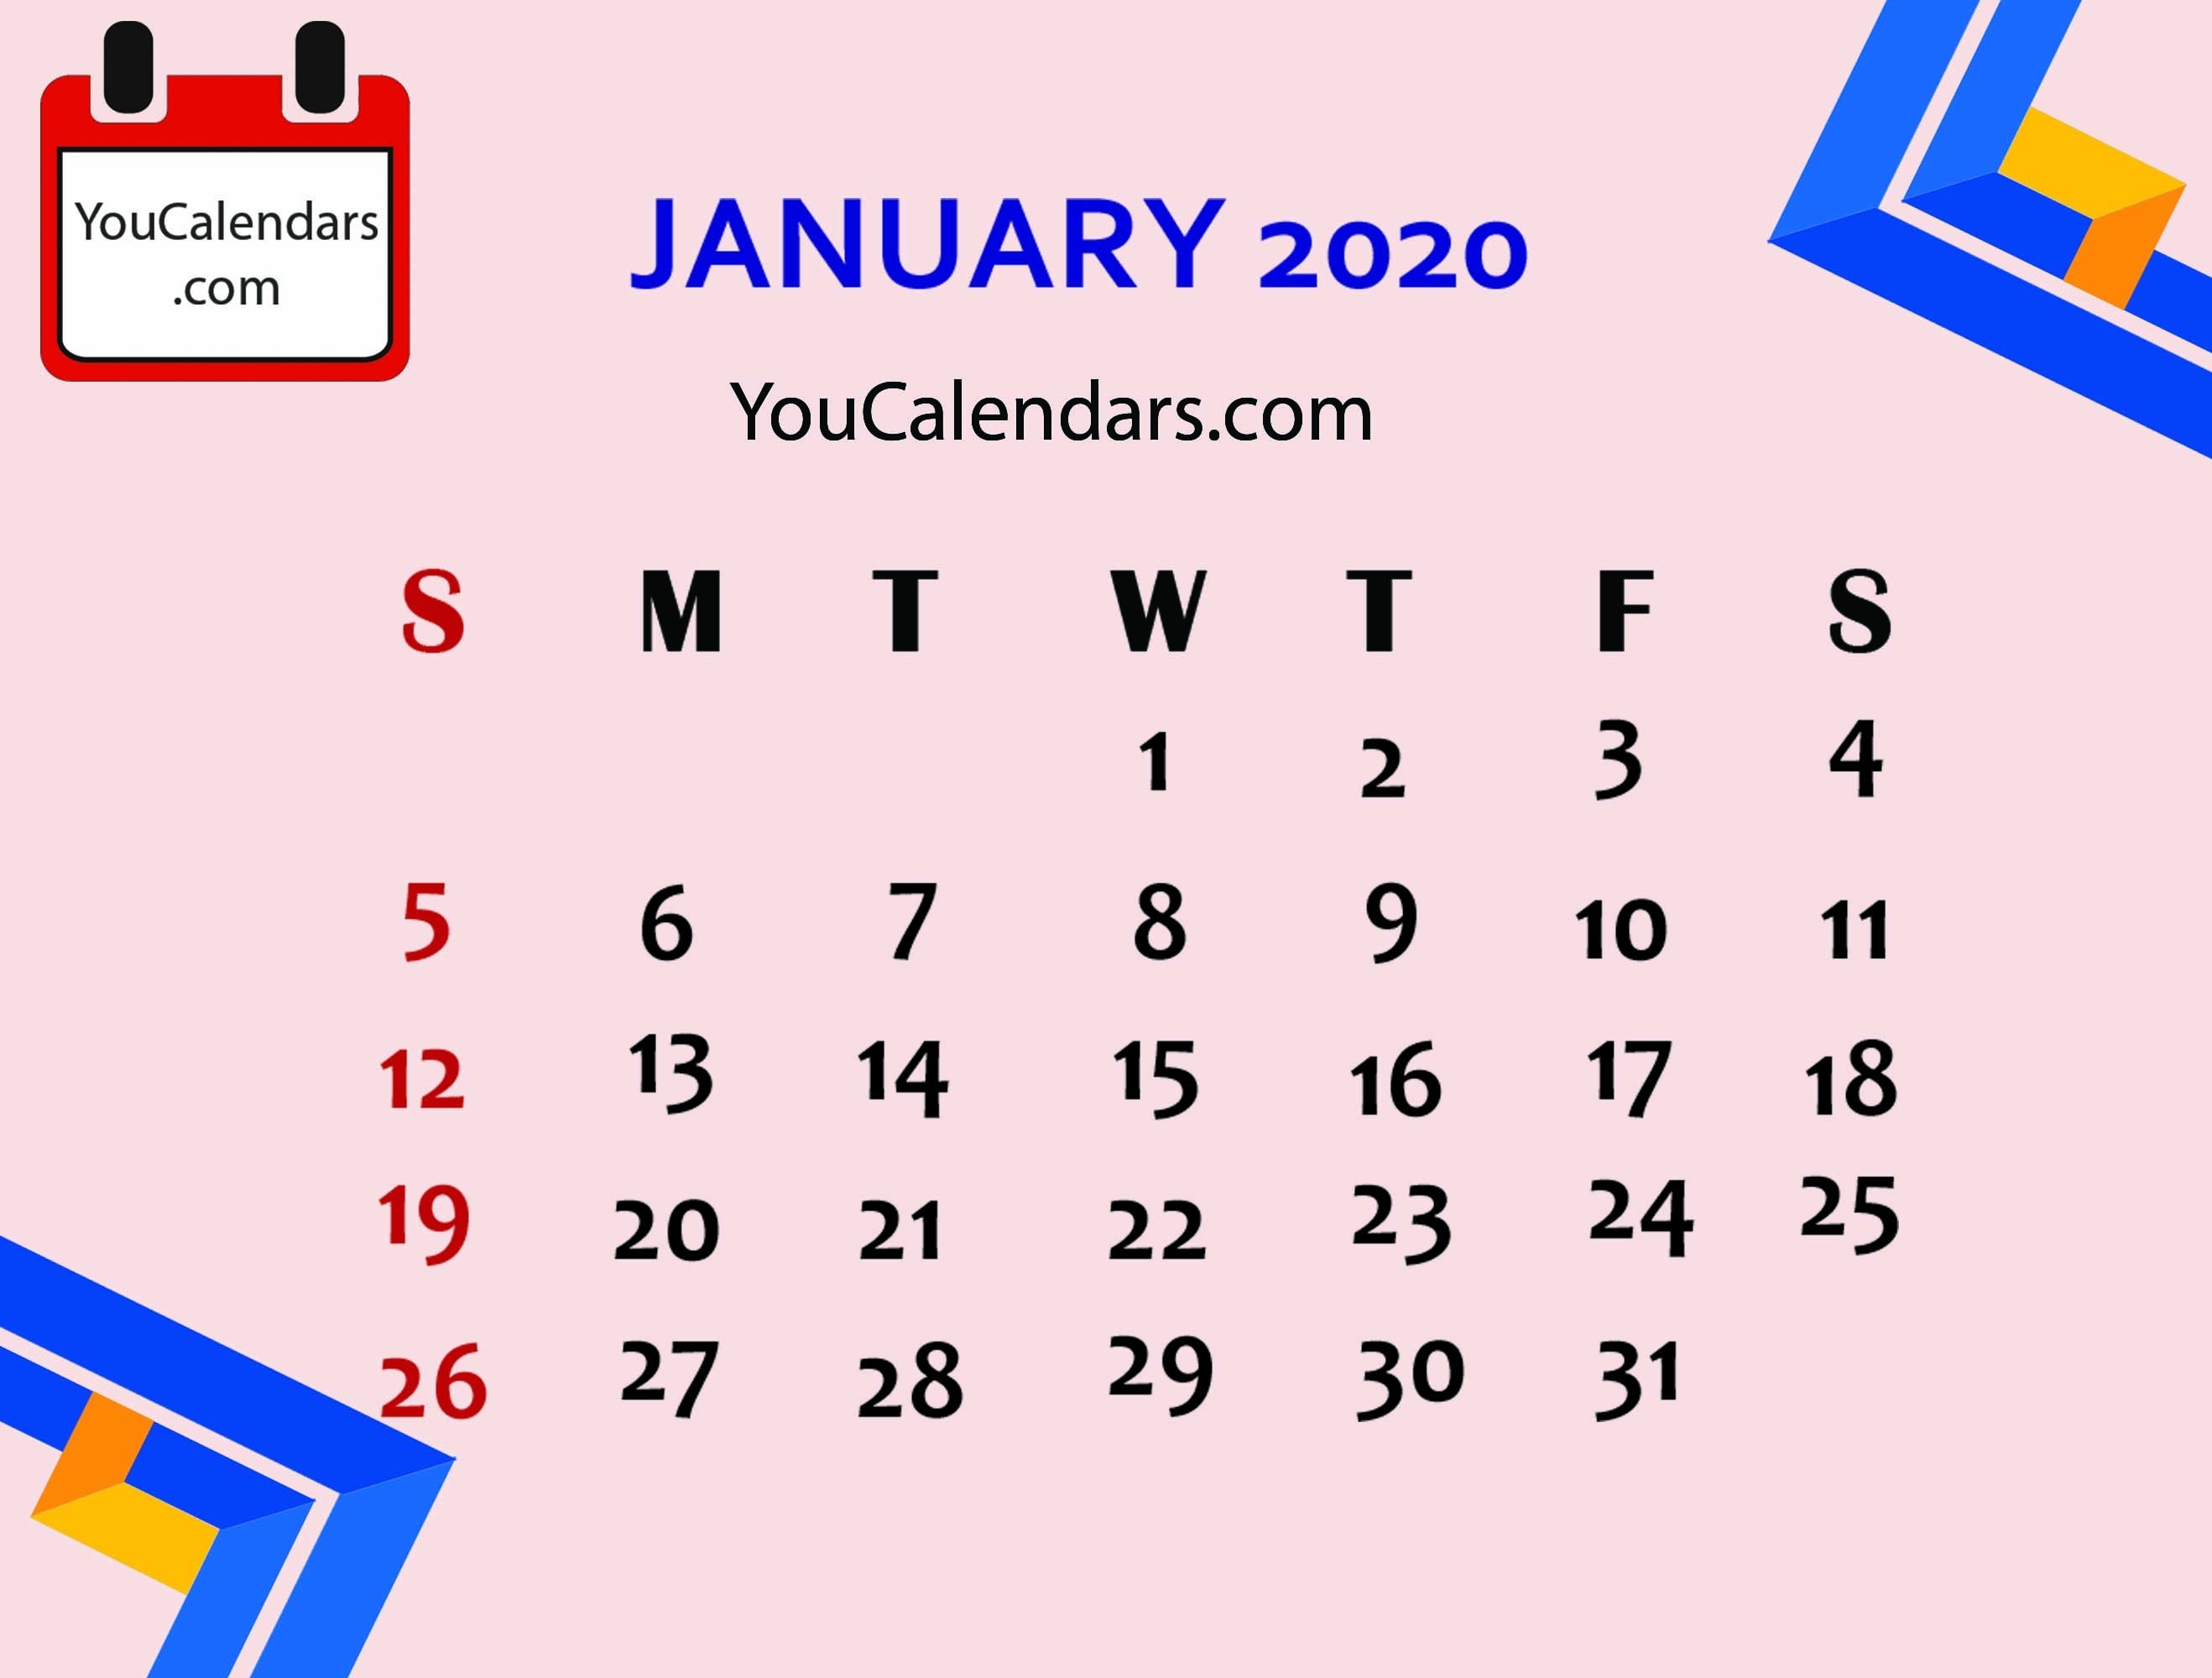 ✅Free January 2020 Calendar Printable Template - You Calendars